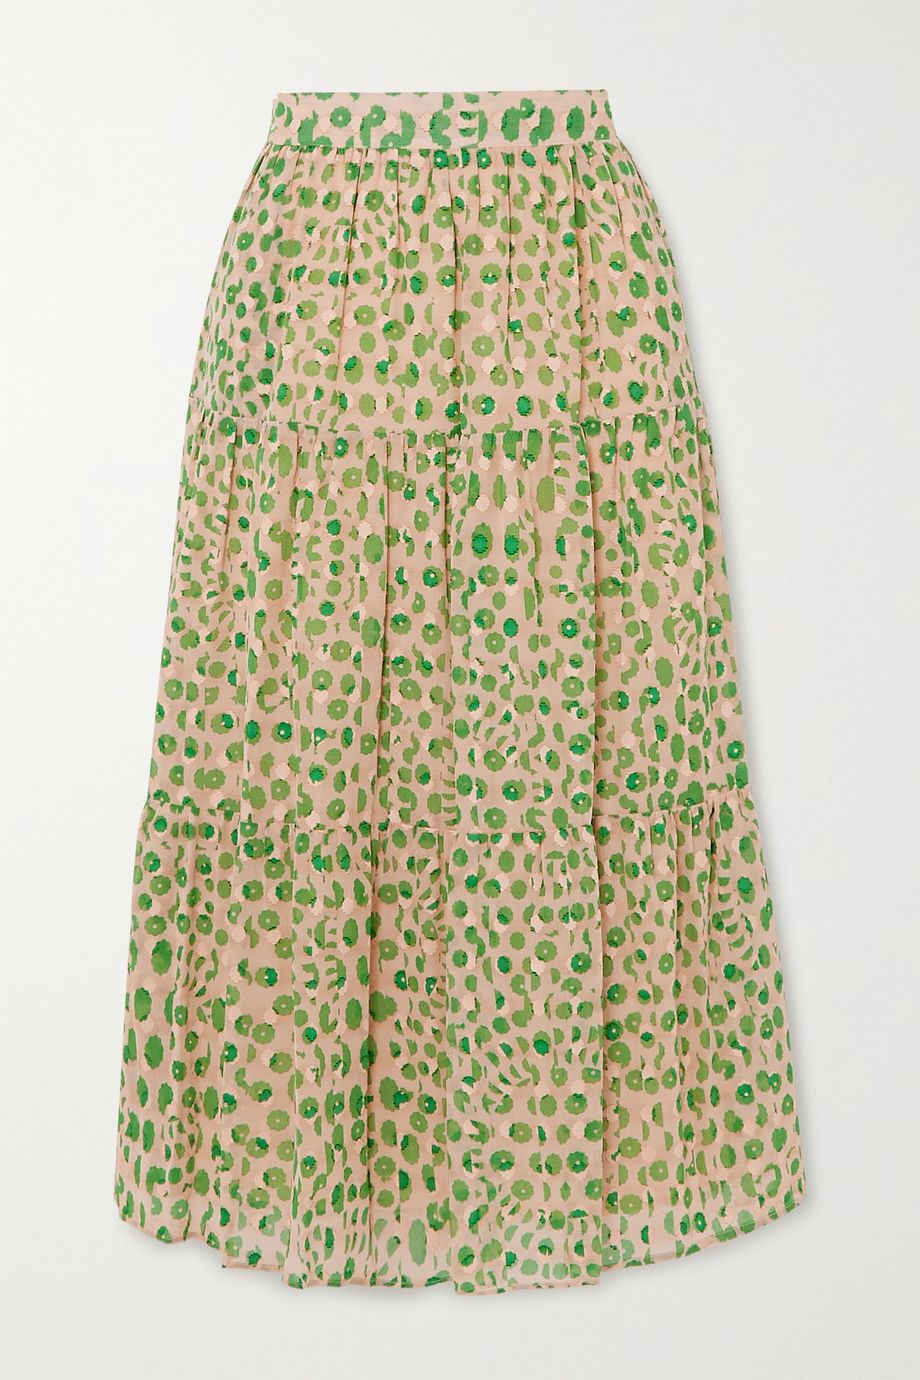 Paul & Joe Basilic tiered floral-print cotton midi skirt